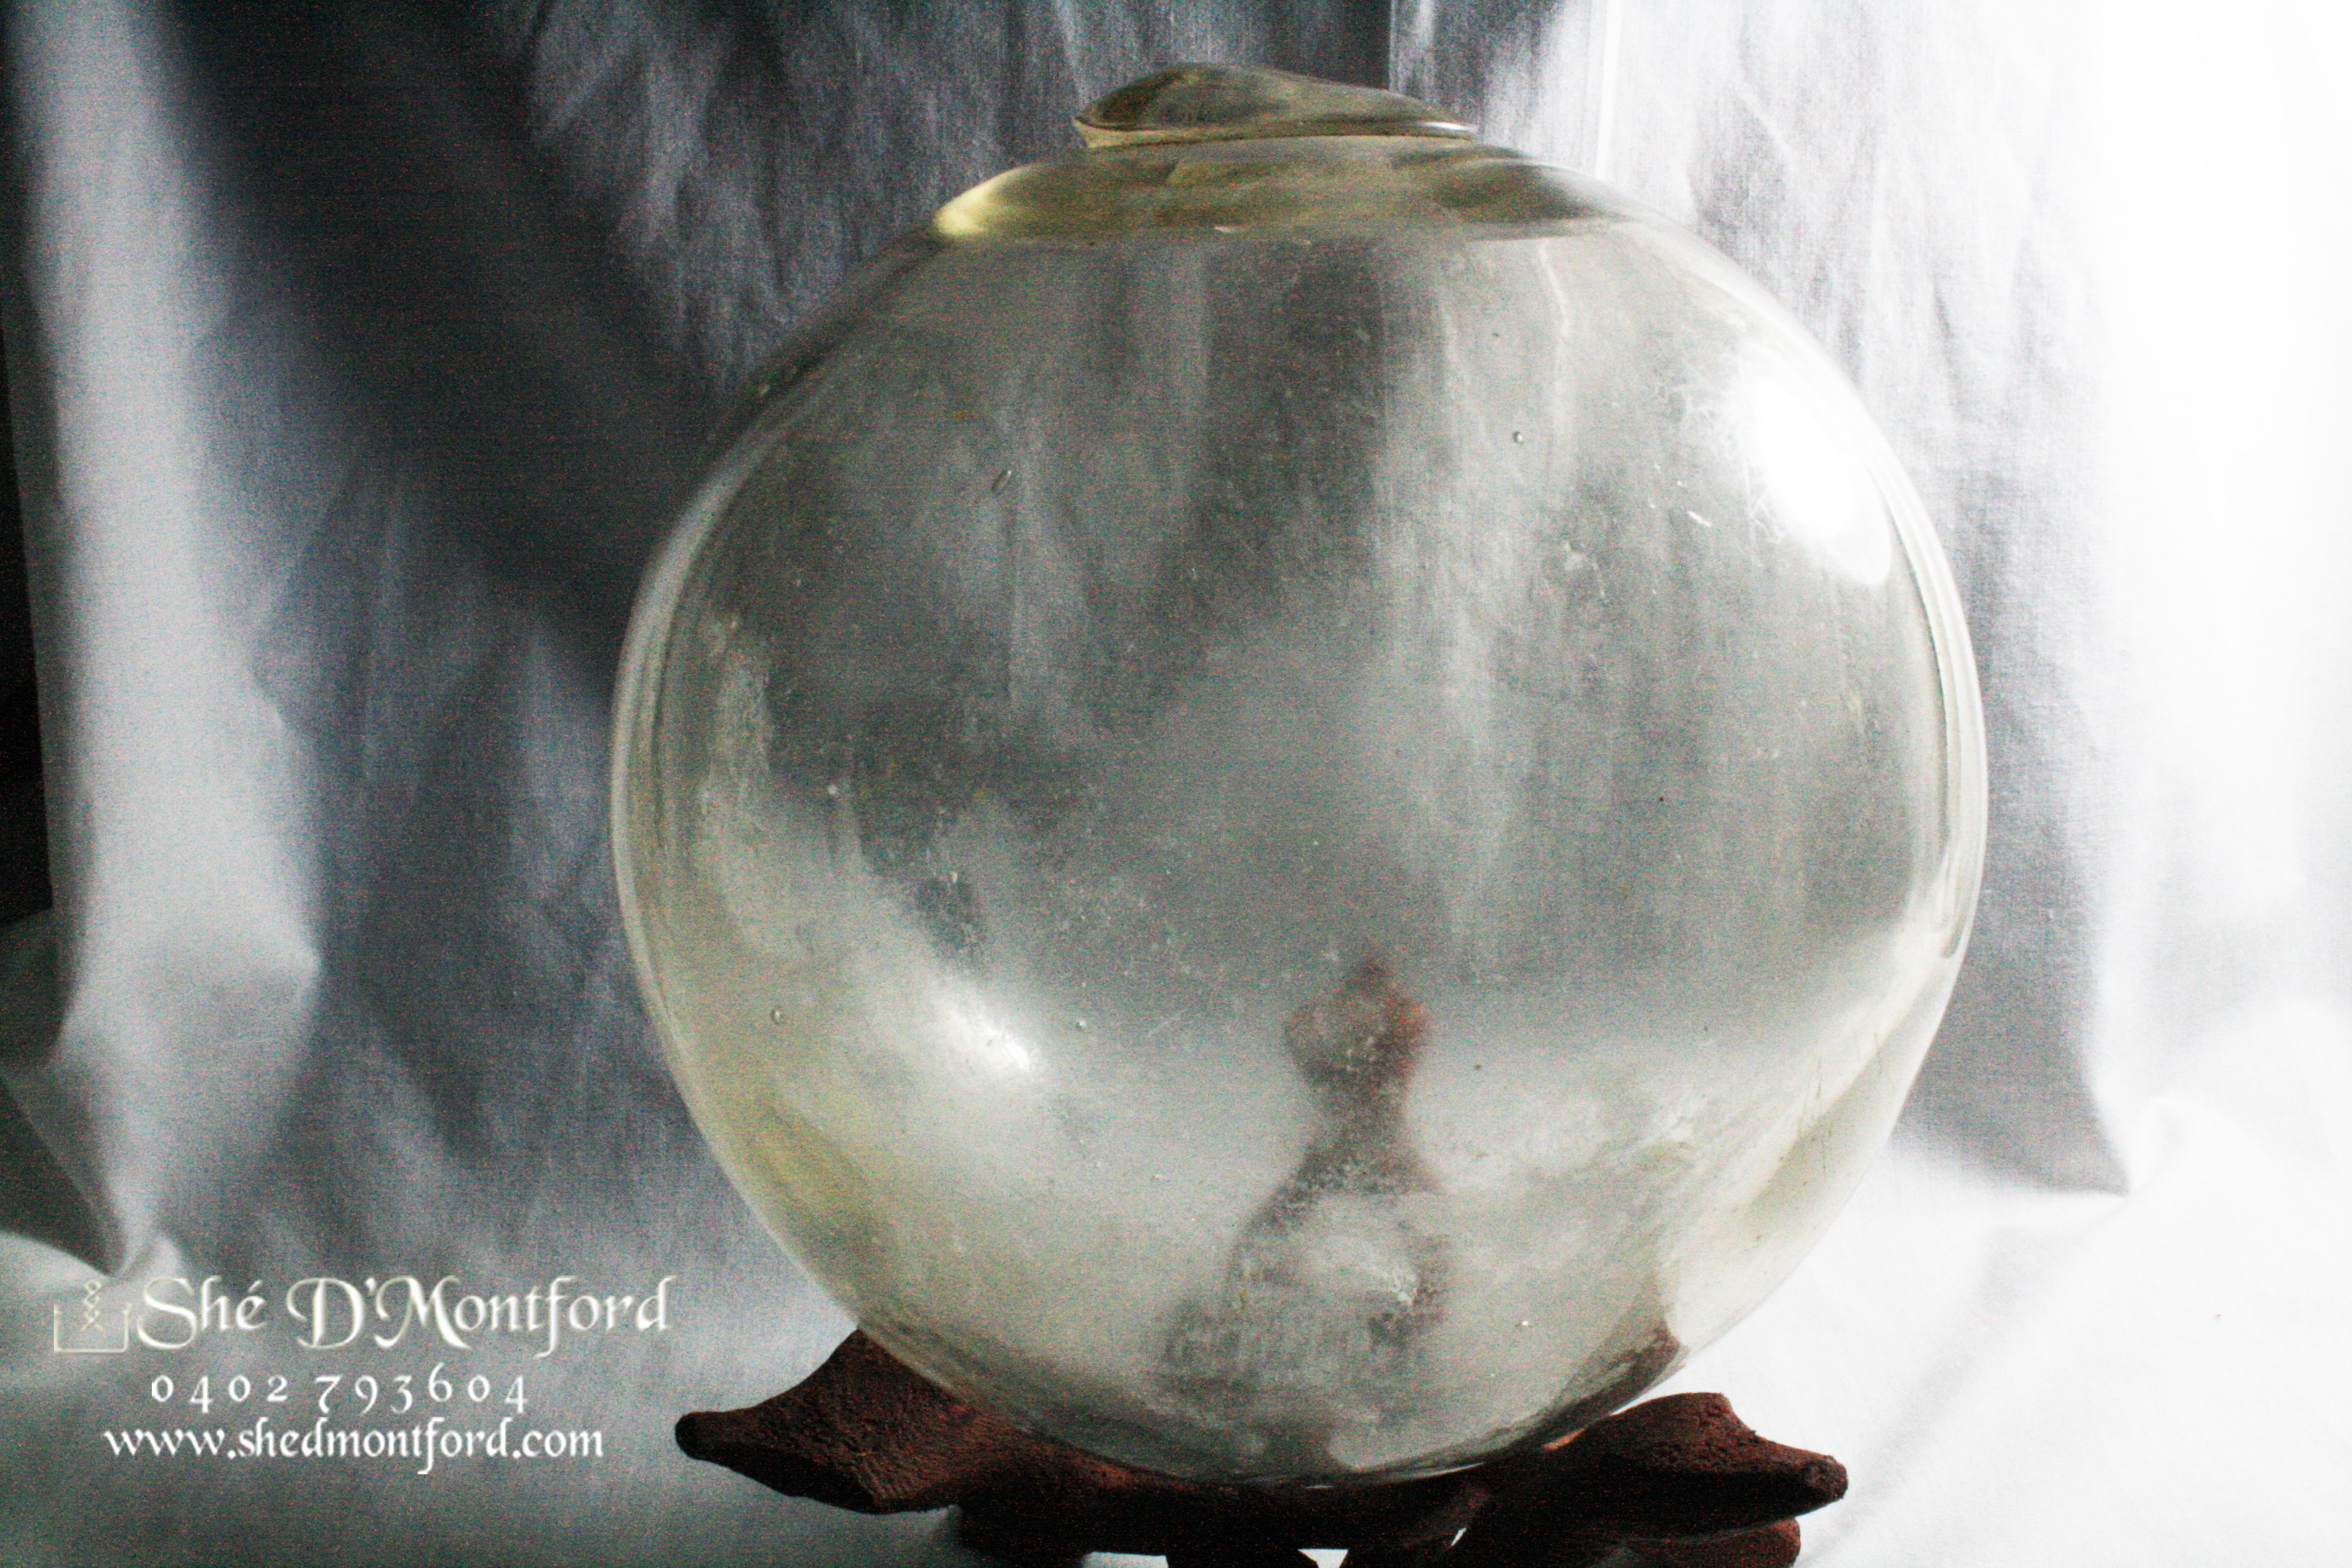 20th Century Large 20th Century Foxed Witches Ball Antique Curio Magical Witchcraft Mirror